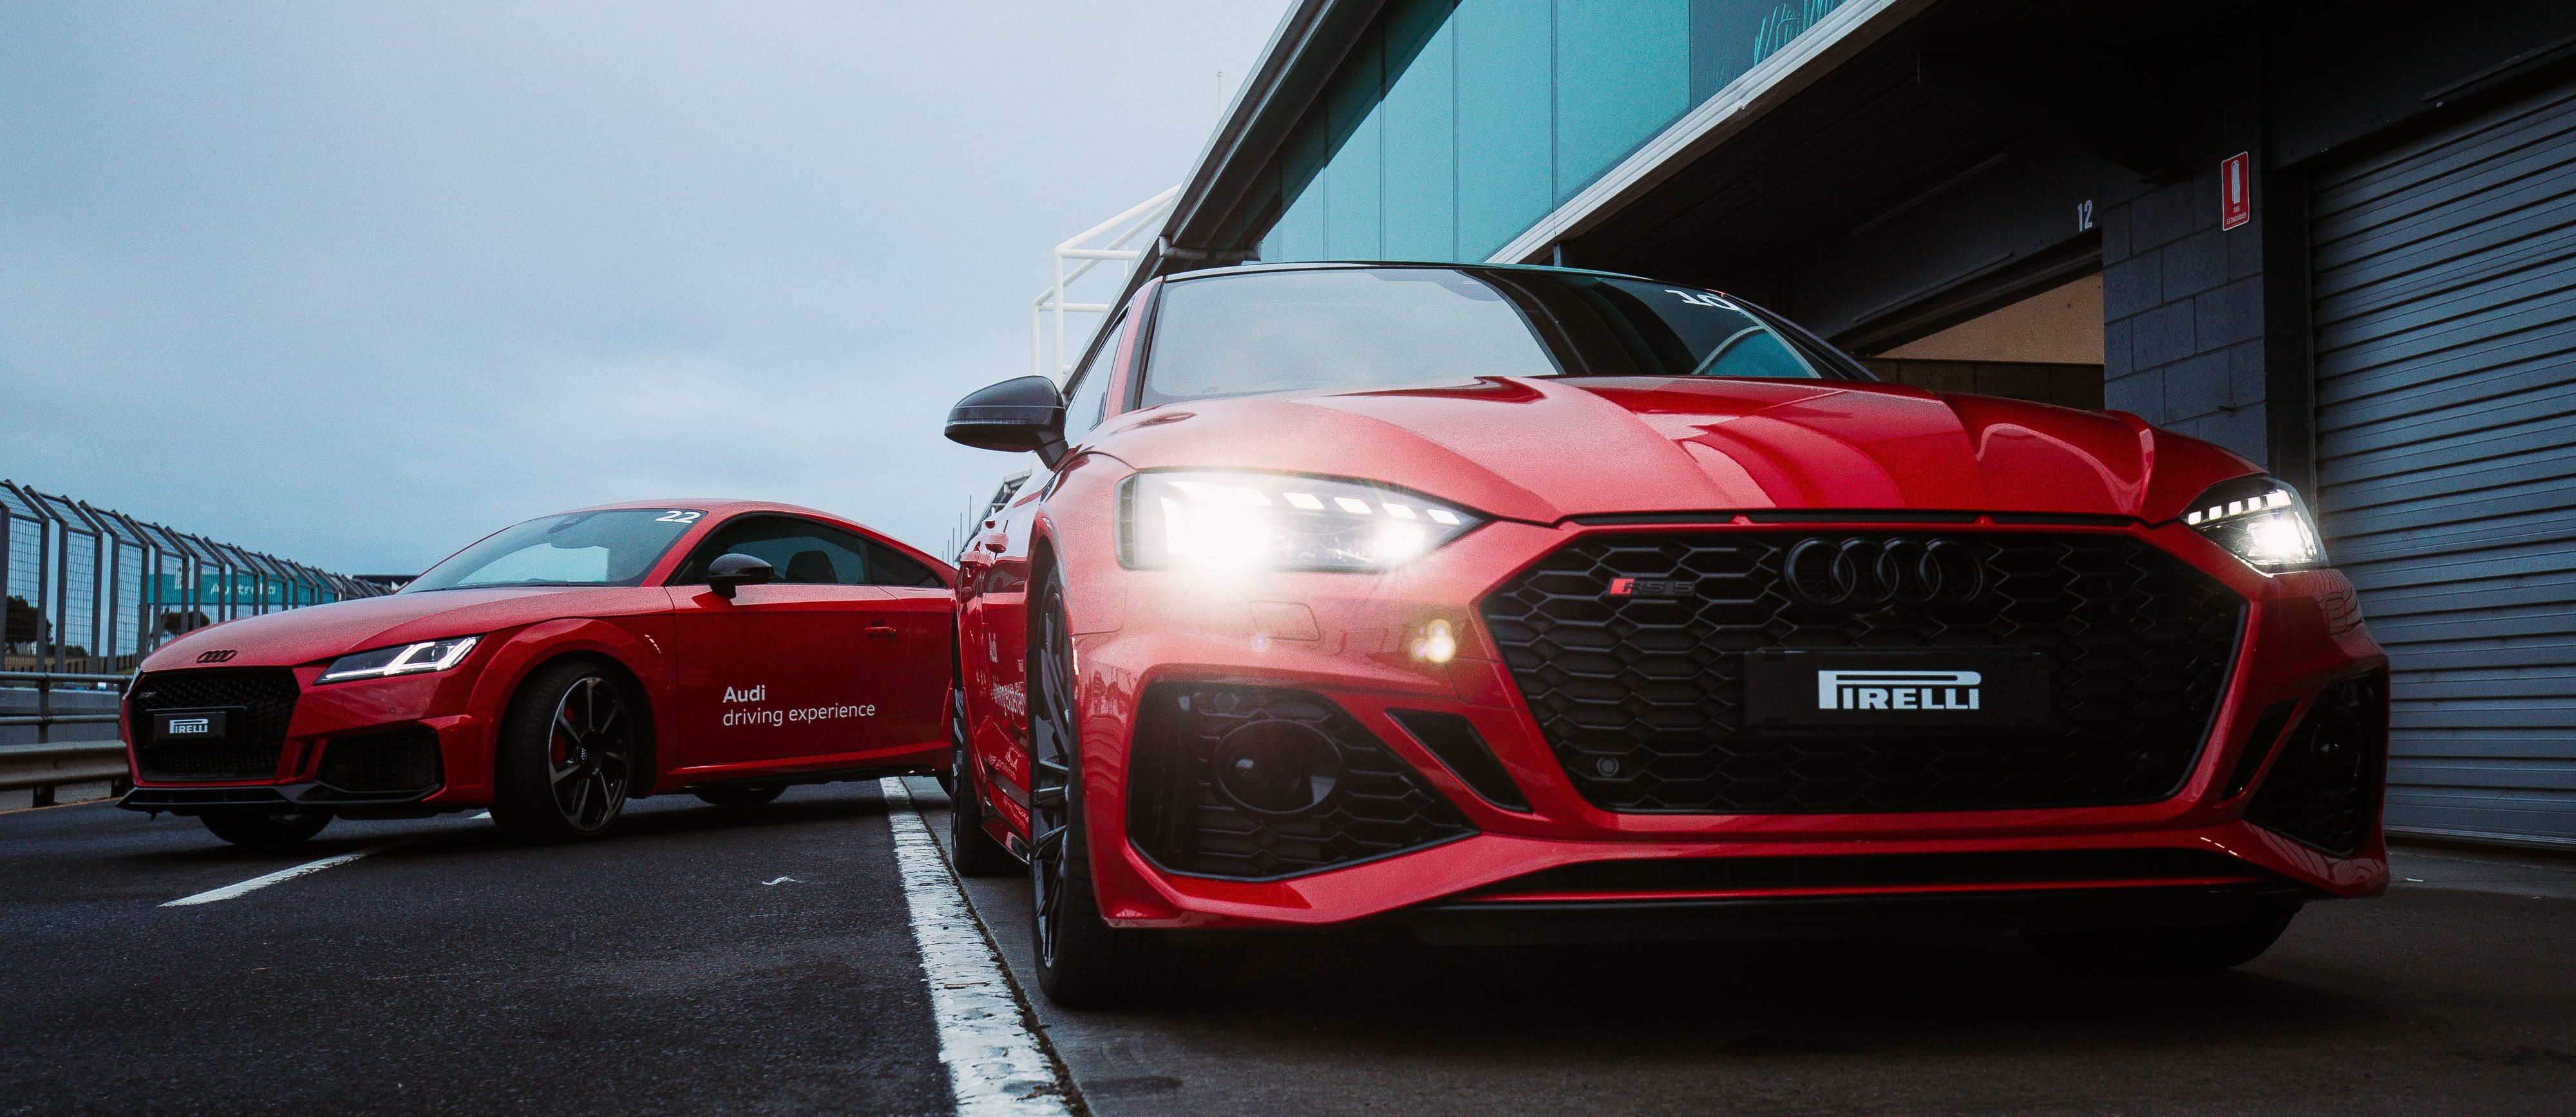 We tamed Australia's scariest race track with the Audi Driving Experience